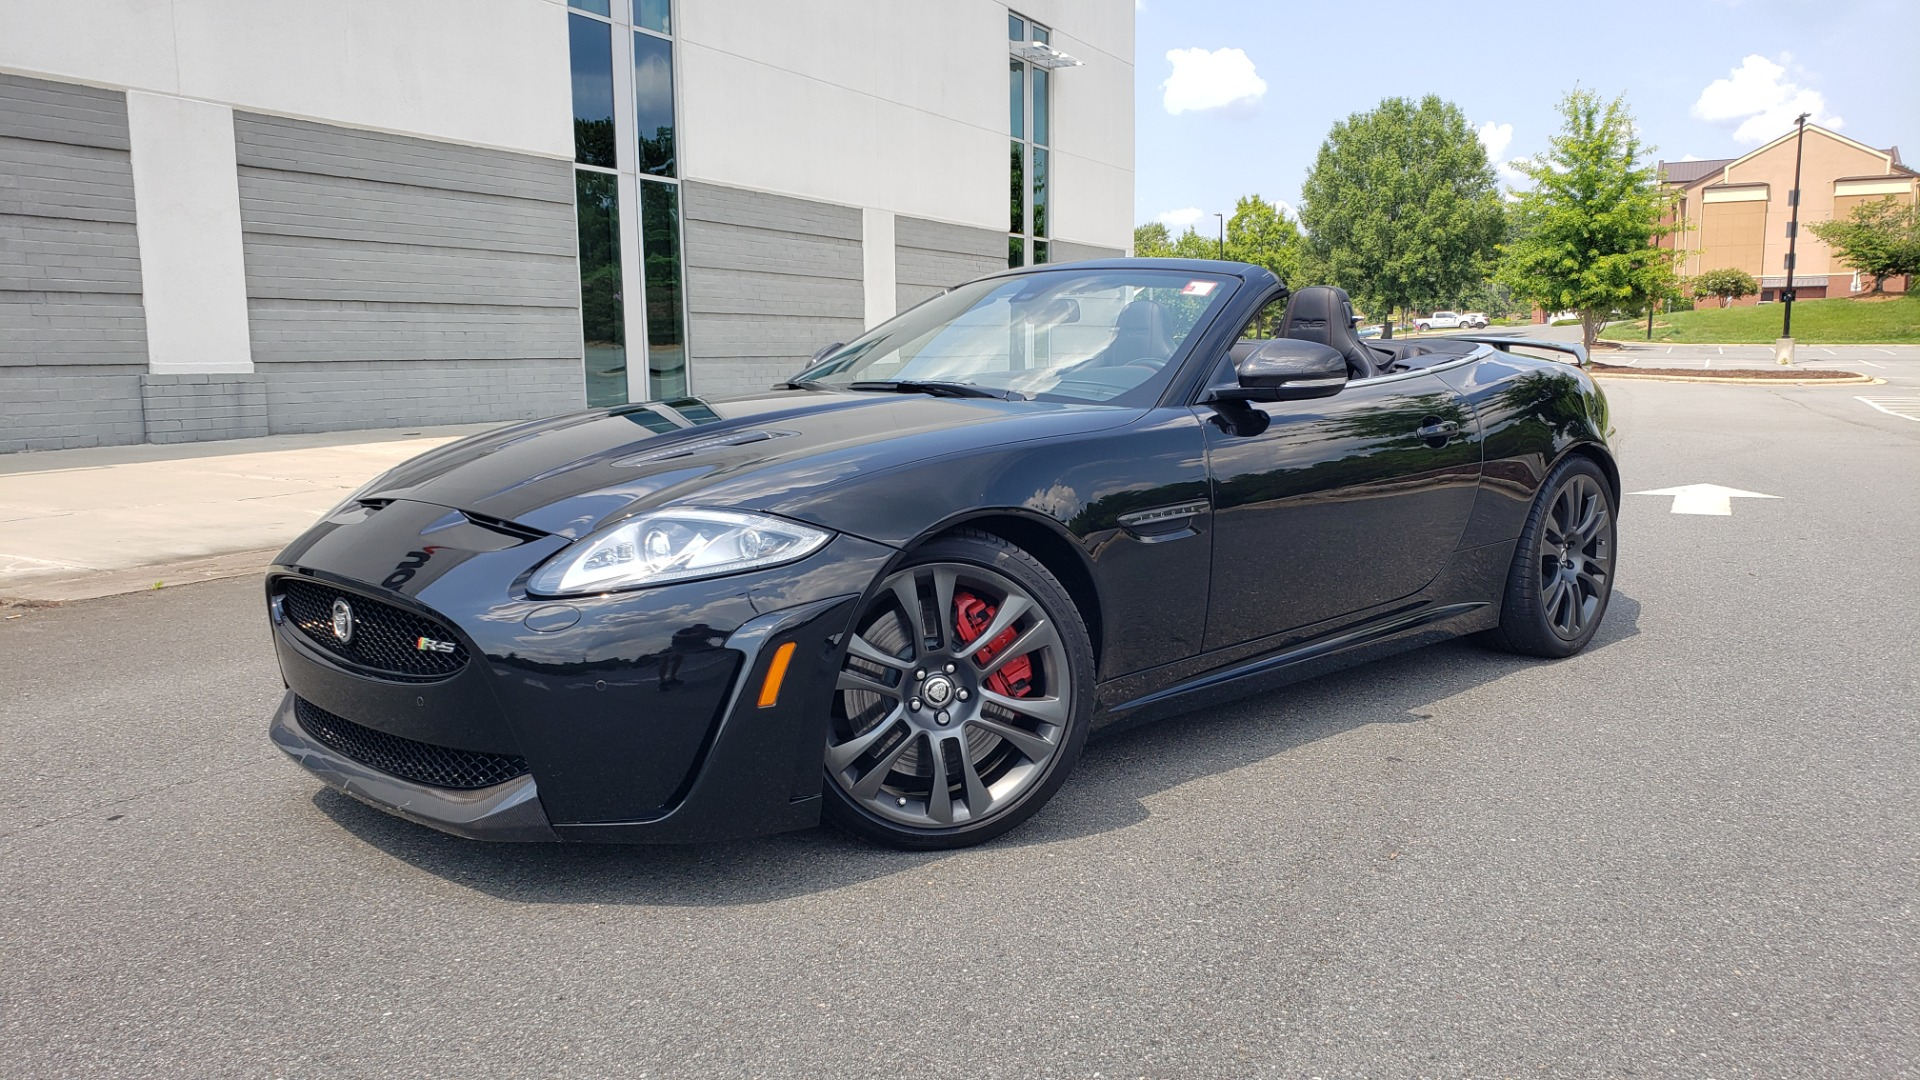 Used 2013 Jaguar XK R-S CONVERTIBLE / SC 5.0L V8 (550HP) / ZF 6-SPD AUTO / NAV / REARVIEW for sale $74,995 at Formula Imports in Charlotte NC 28227 1